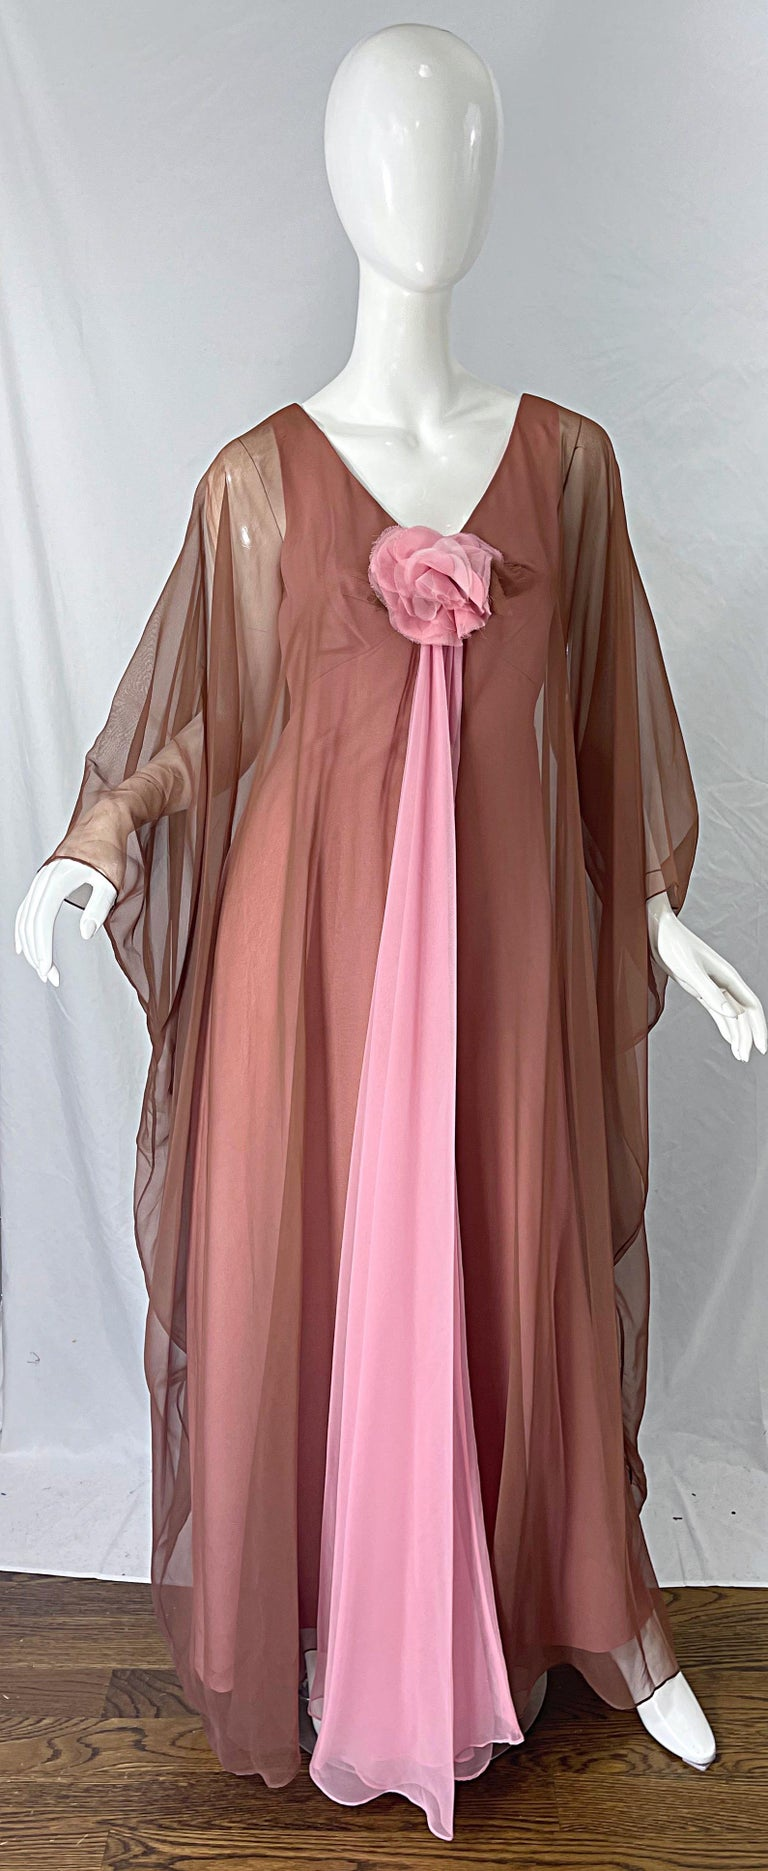 1970s ESTEVEZ bubblegum pink and nude brown chiffon caftan maxi dress ! Flower applique at center bust. Full metal zipper up the back with hook-and-eye closure. Great for any day or evening event. In great condition. Very well made, with lots of